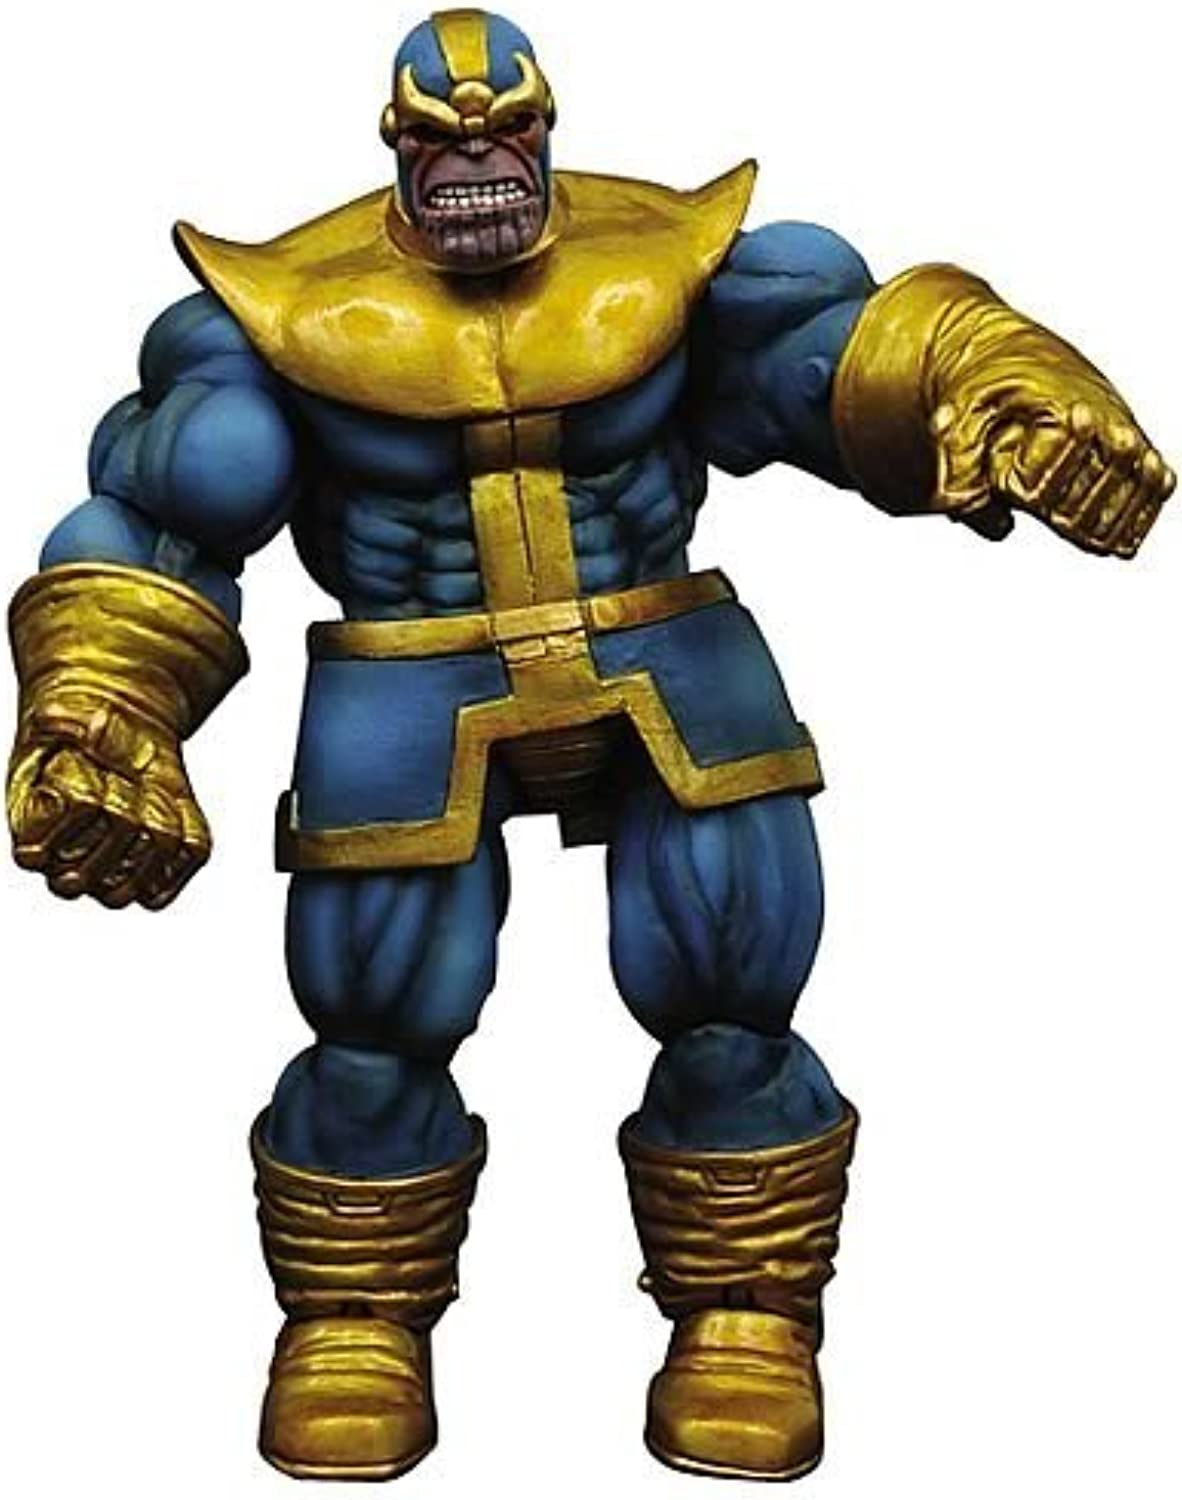 Marvel Select ( Marvel Select ) Thanos ( Sanosu ) figure by X-Men